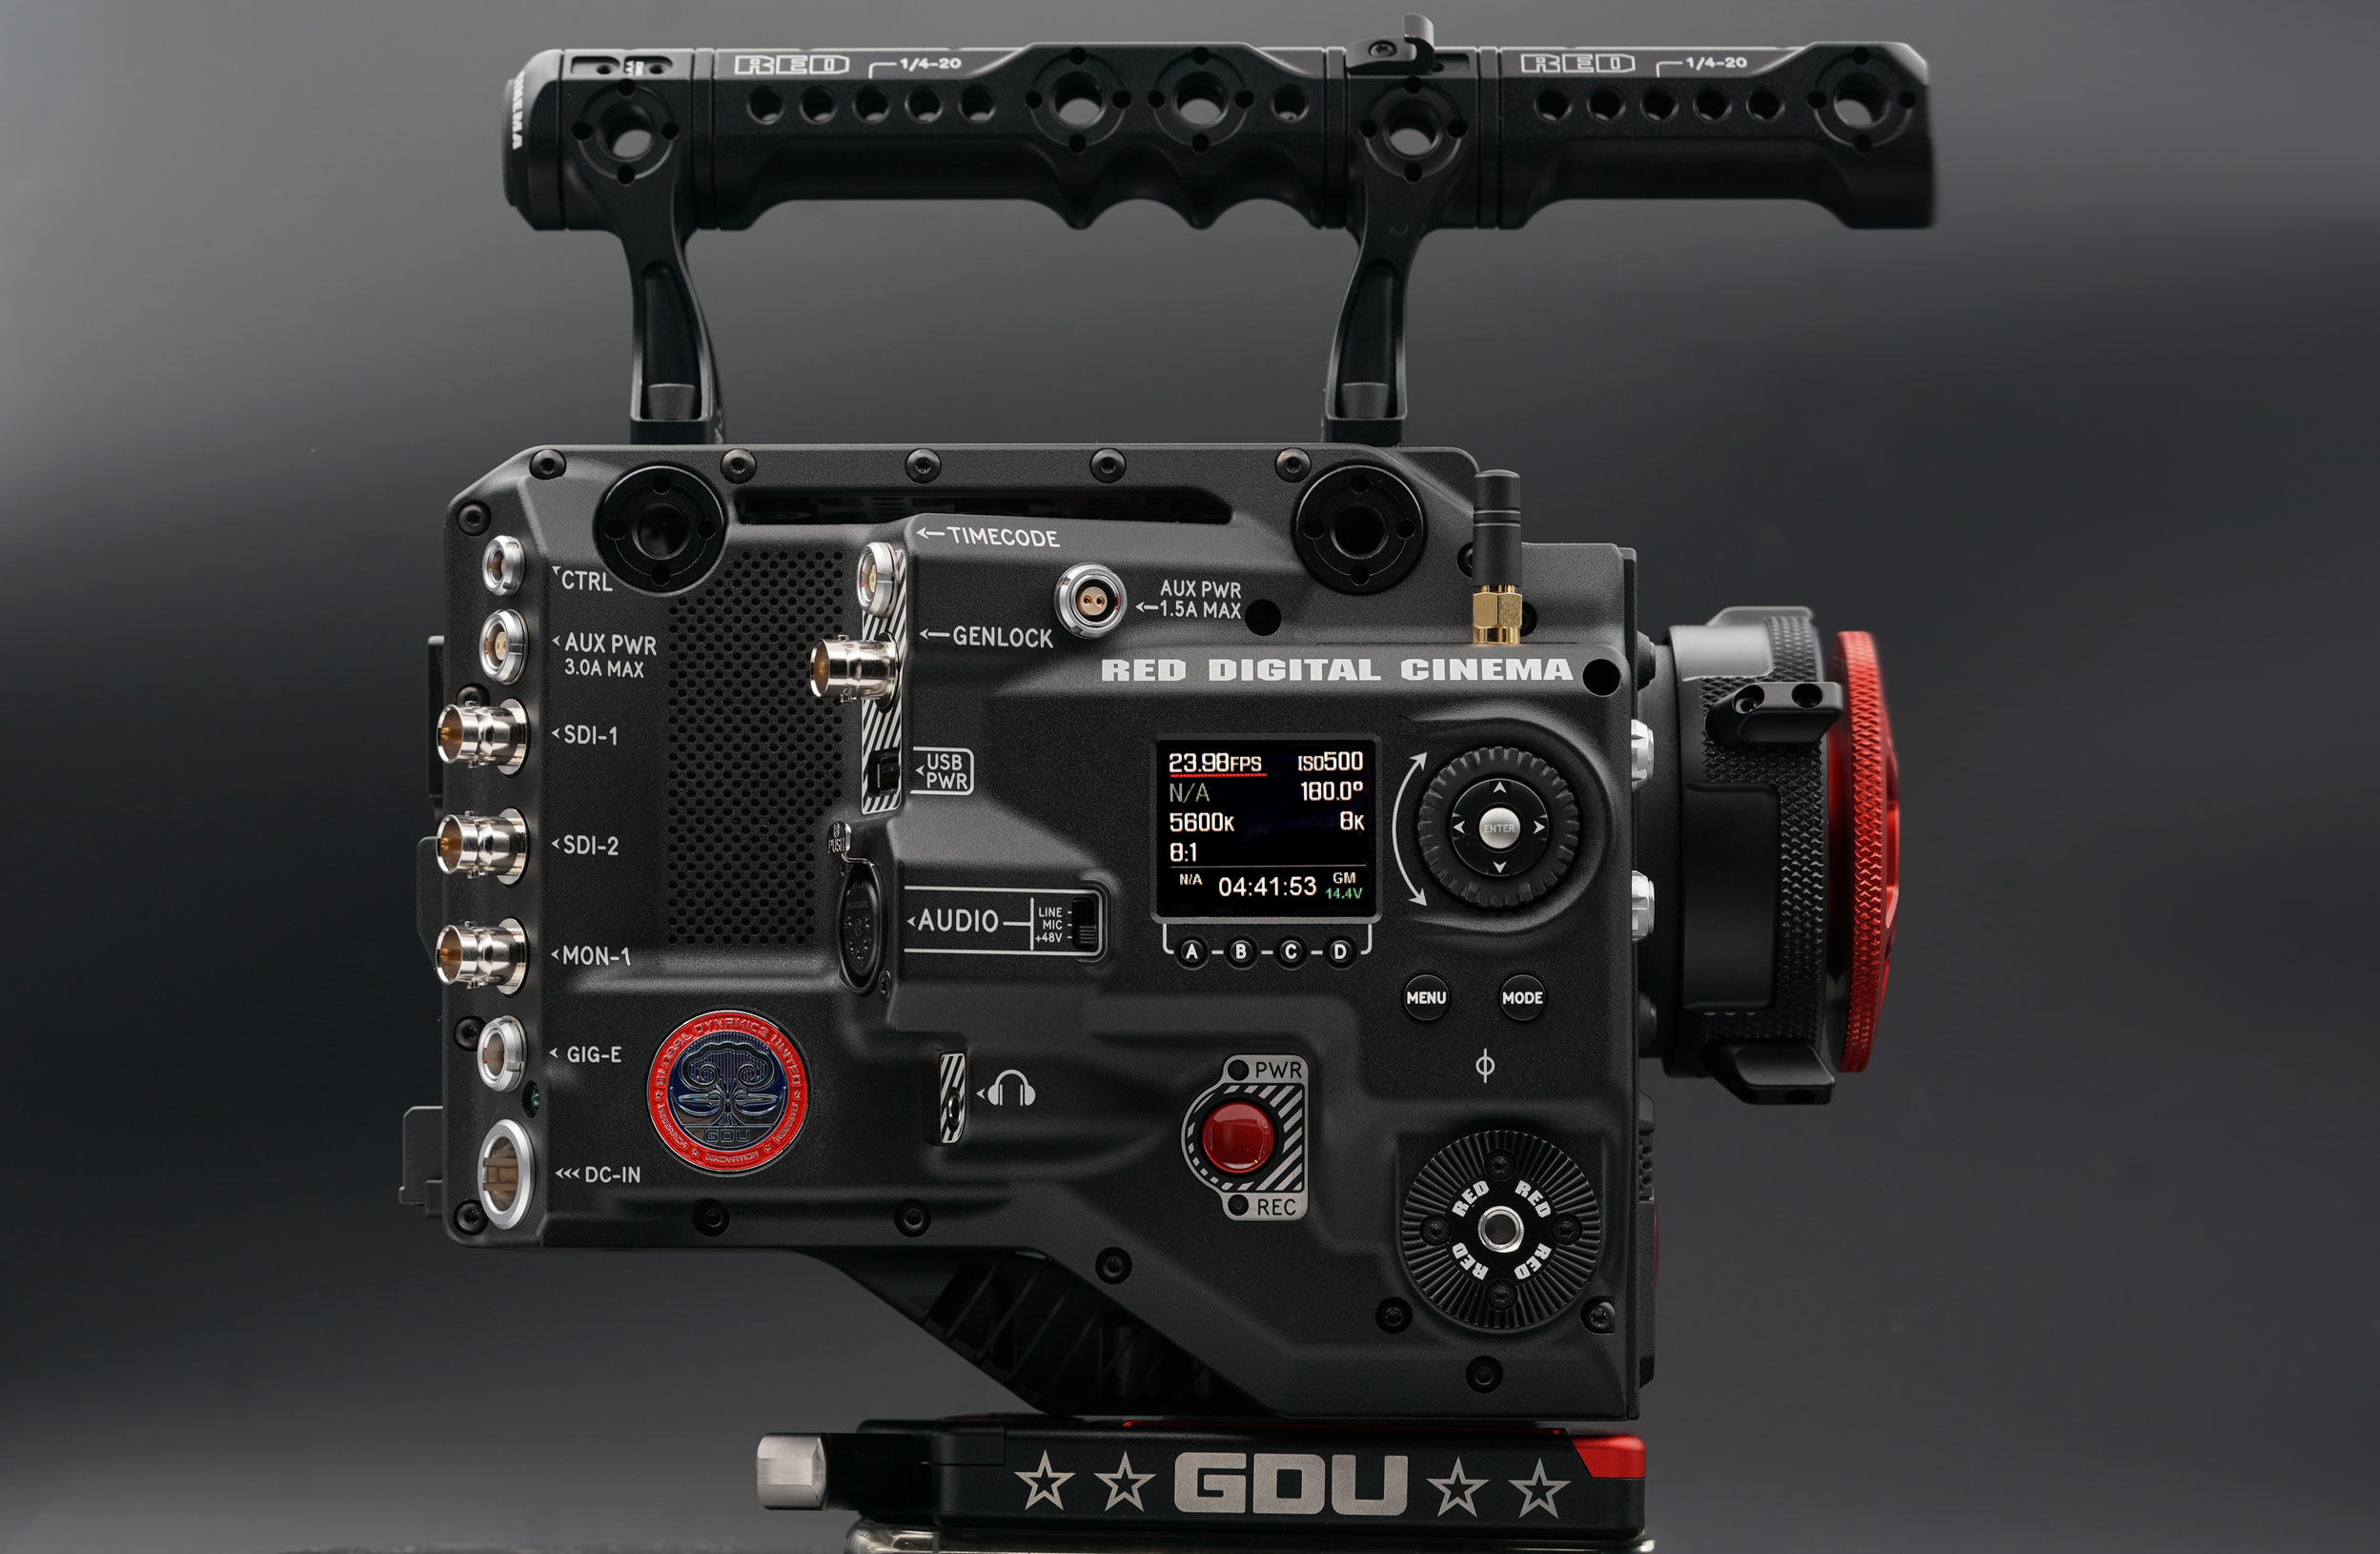 RED Announces Compact 8K RED Ranger Camera Exclusively for Rental